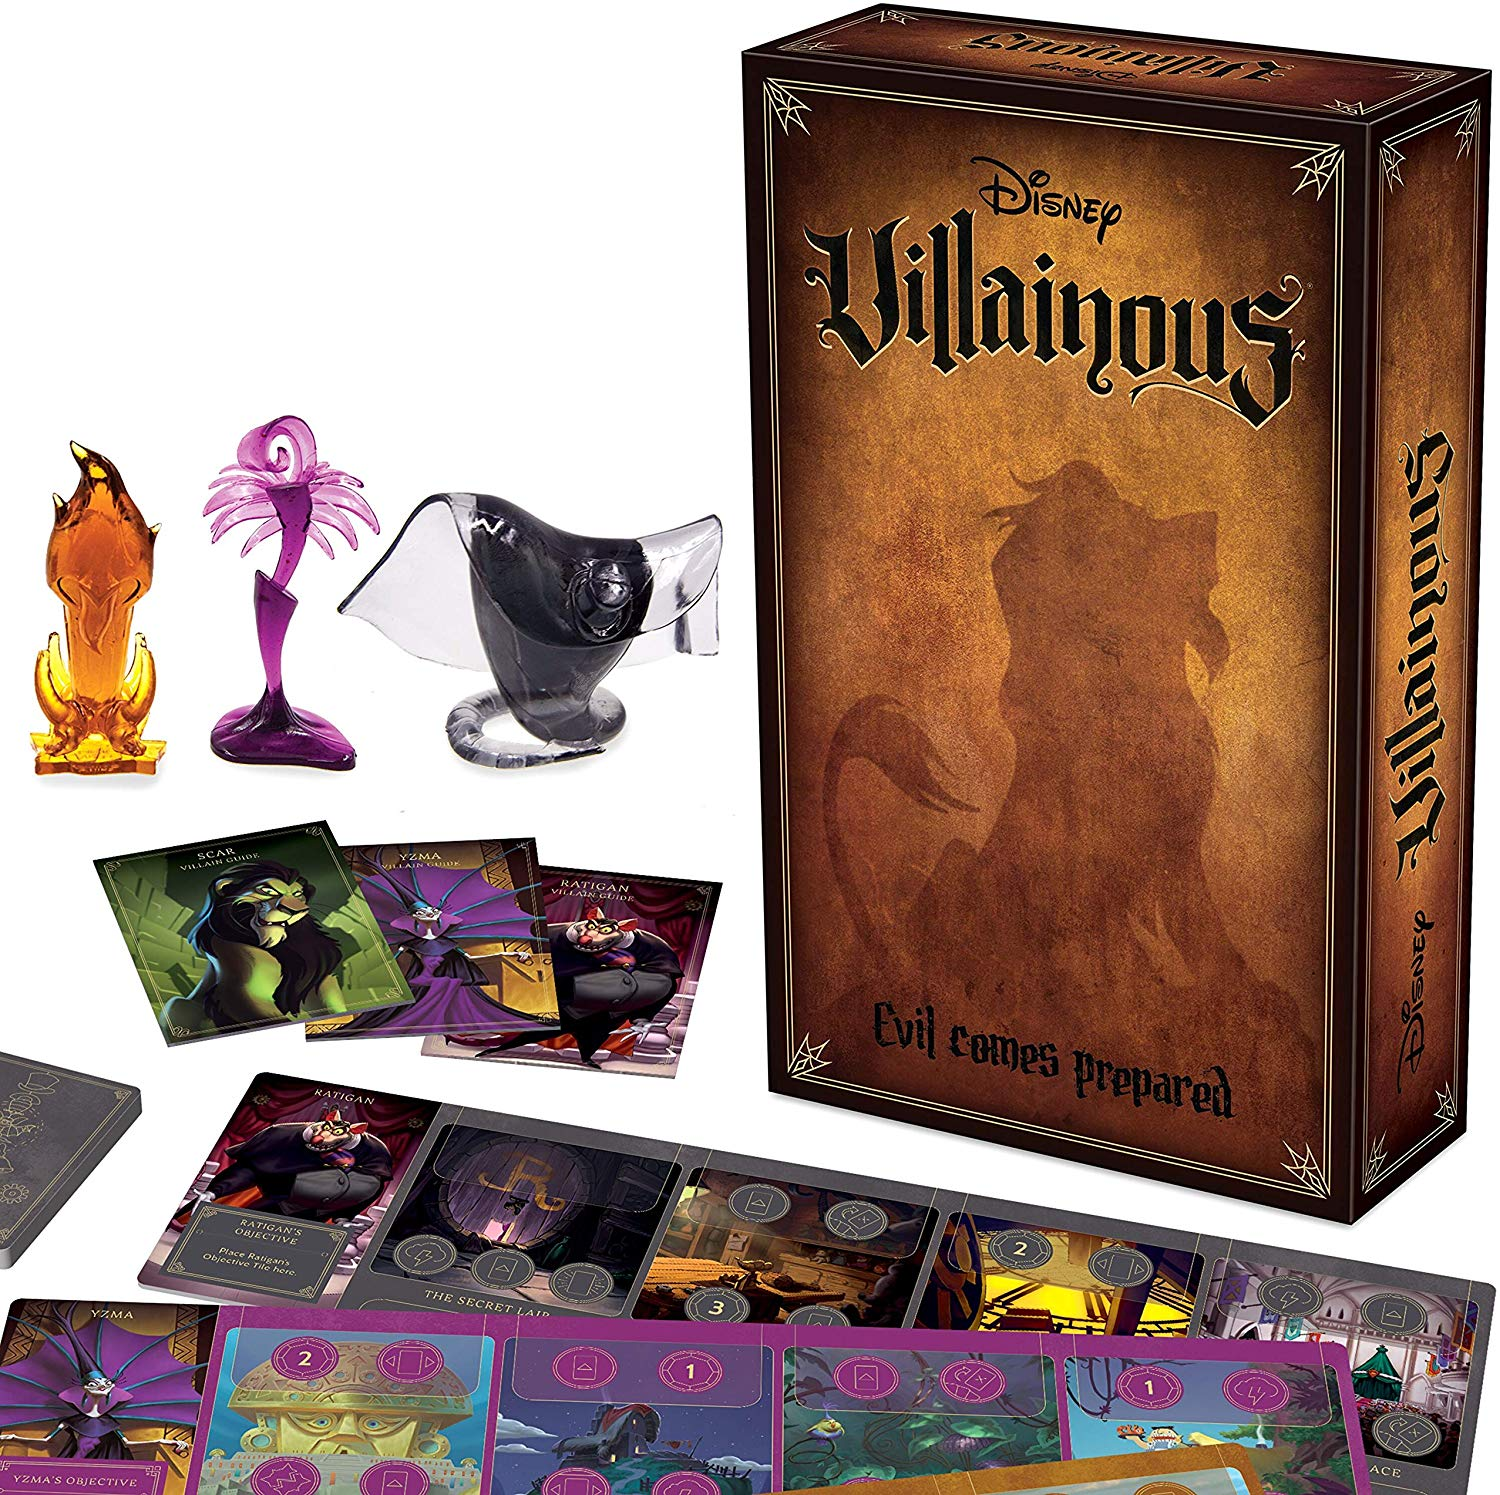 Disney Villianous Evil Comes Prepared. Characters you love - in this asymmetric style of game play, Each Disney villain has their own objectives and goals. Once you've figured out The best way to play as one Disney villain, try to solve another!